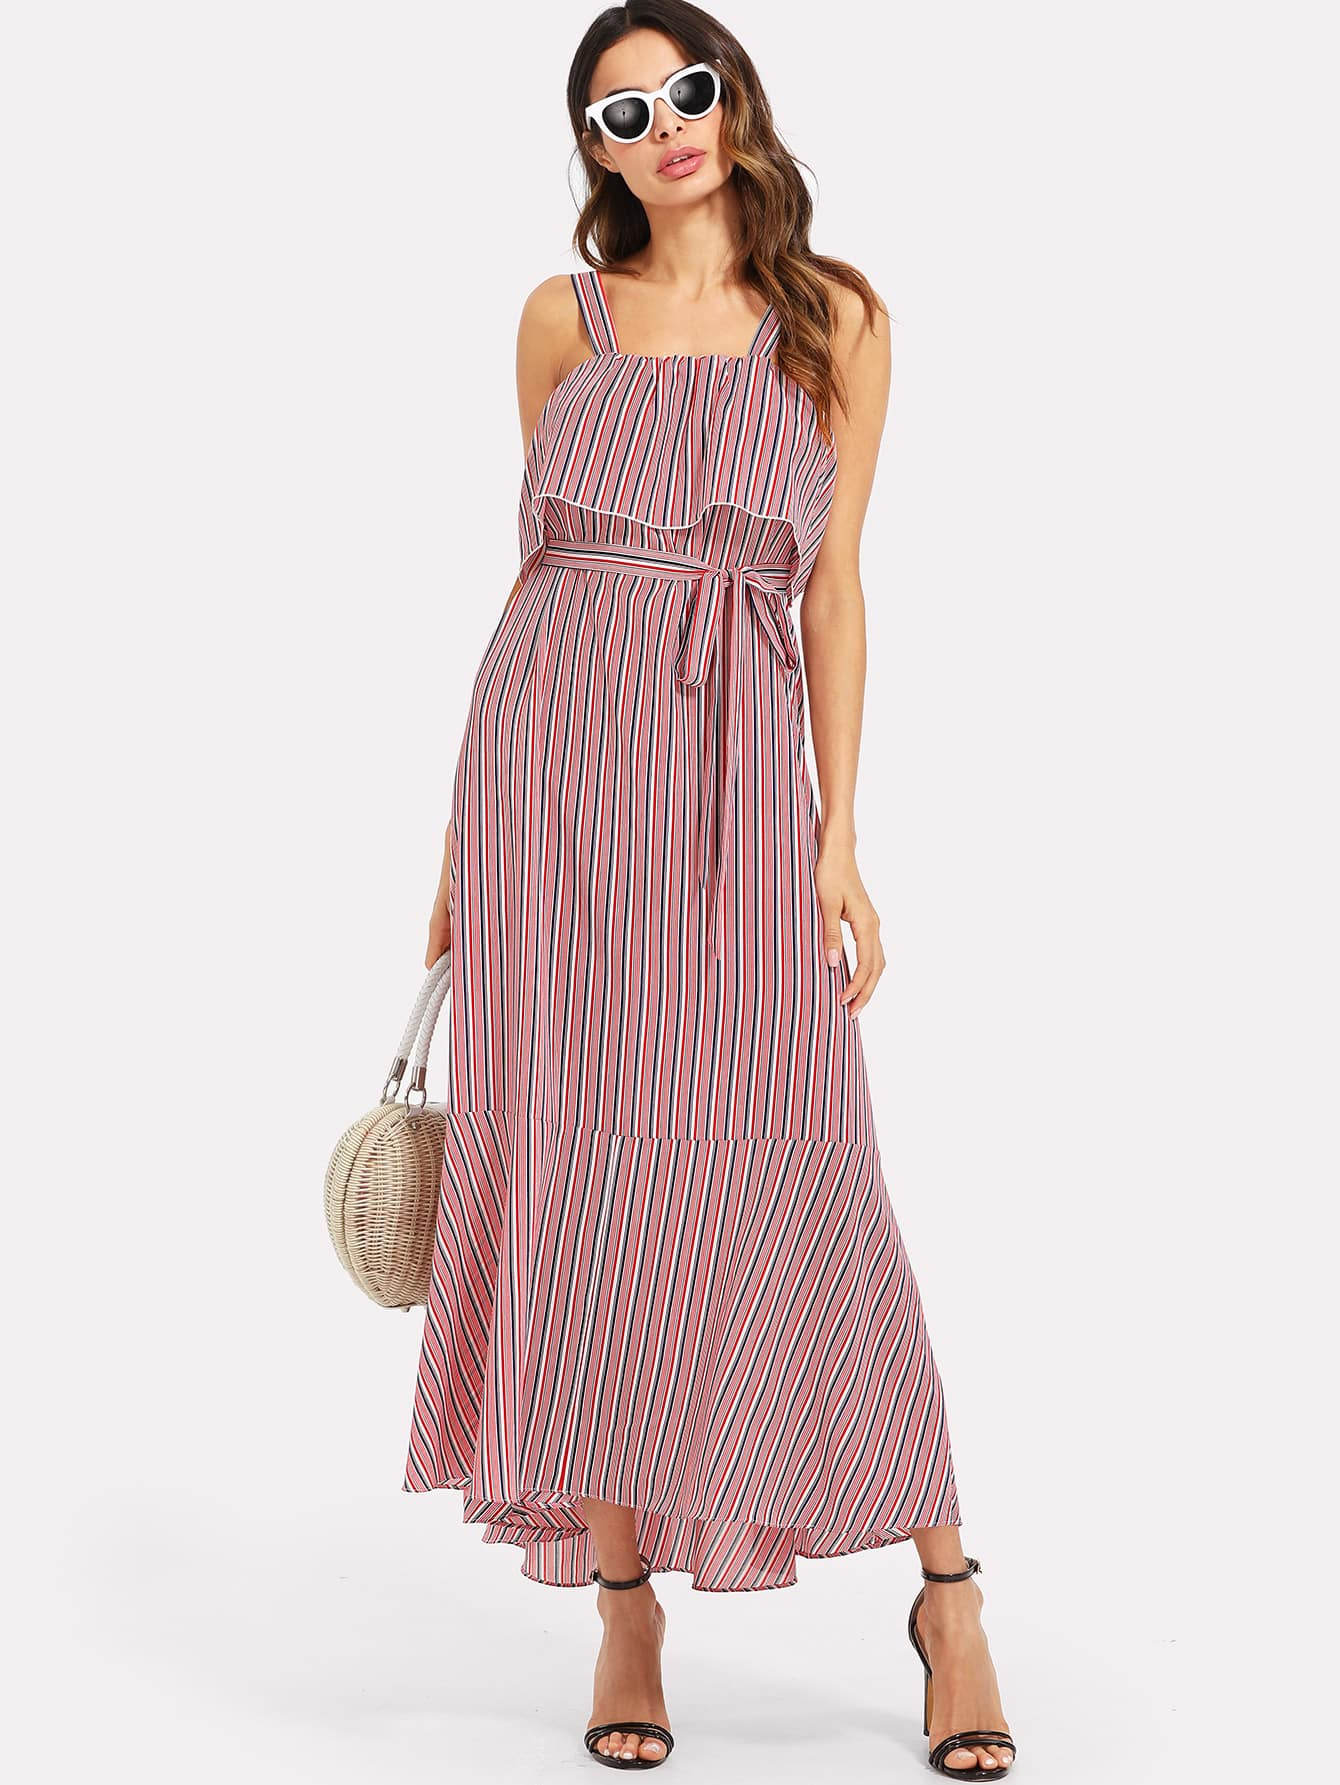 Self Belted Flounce Trim Striped Dress flounce trim one shoulder asymmetrical belted dress